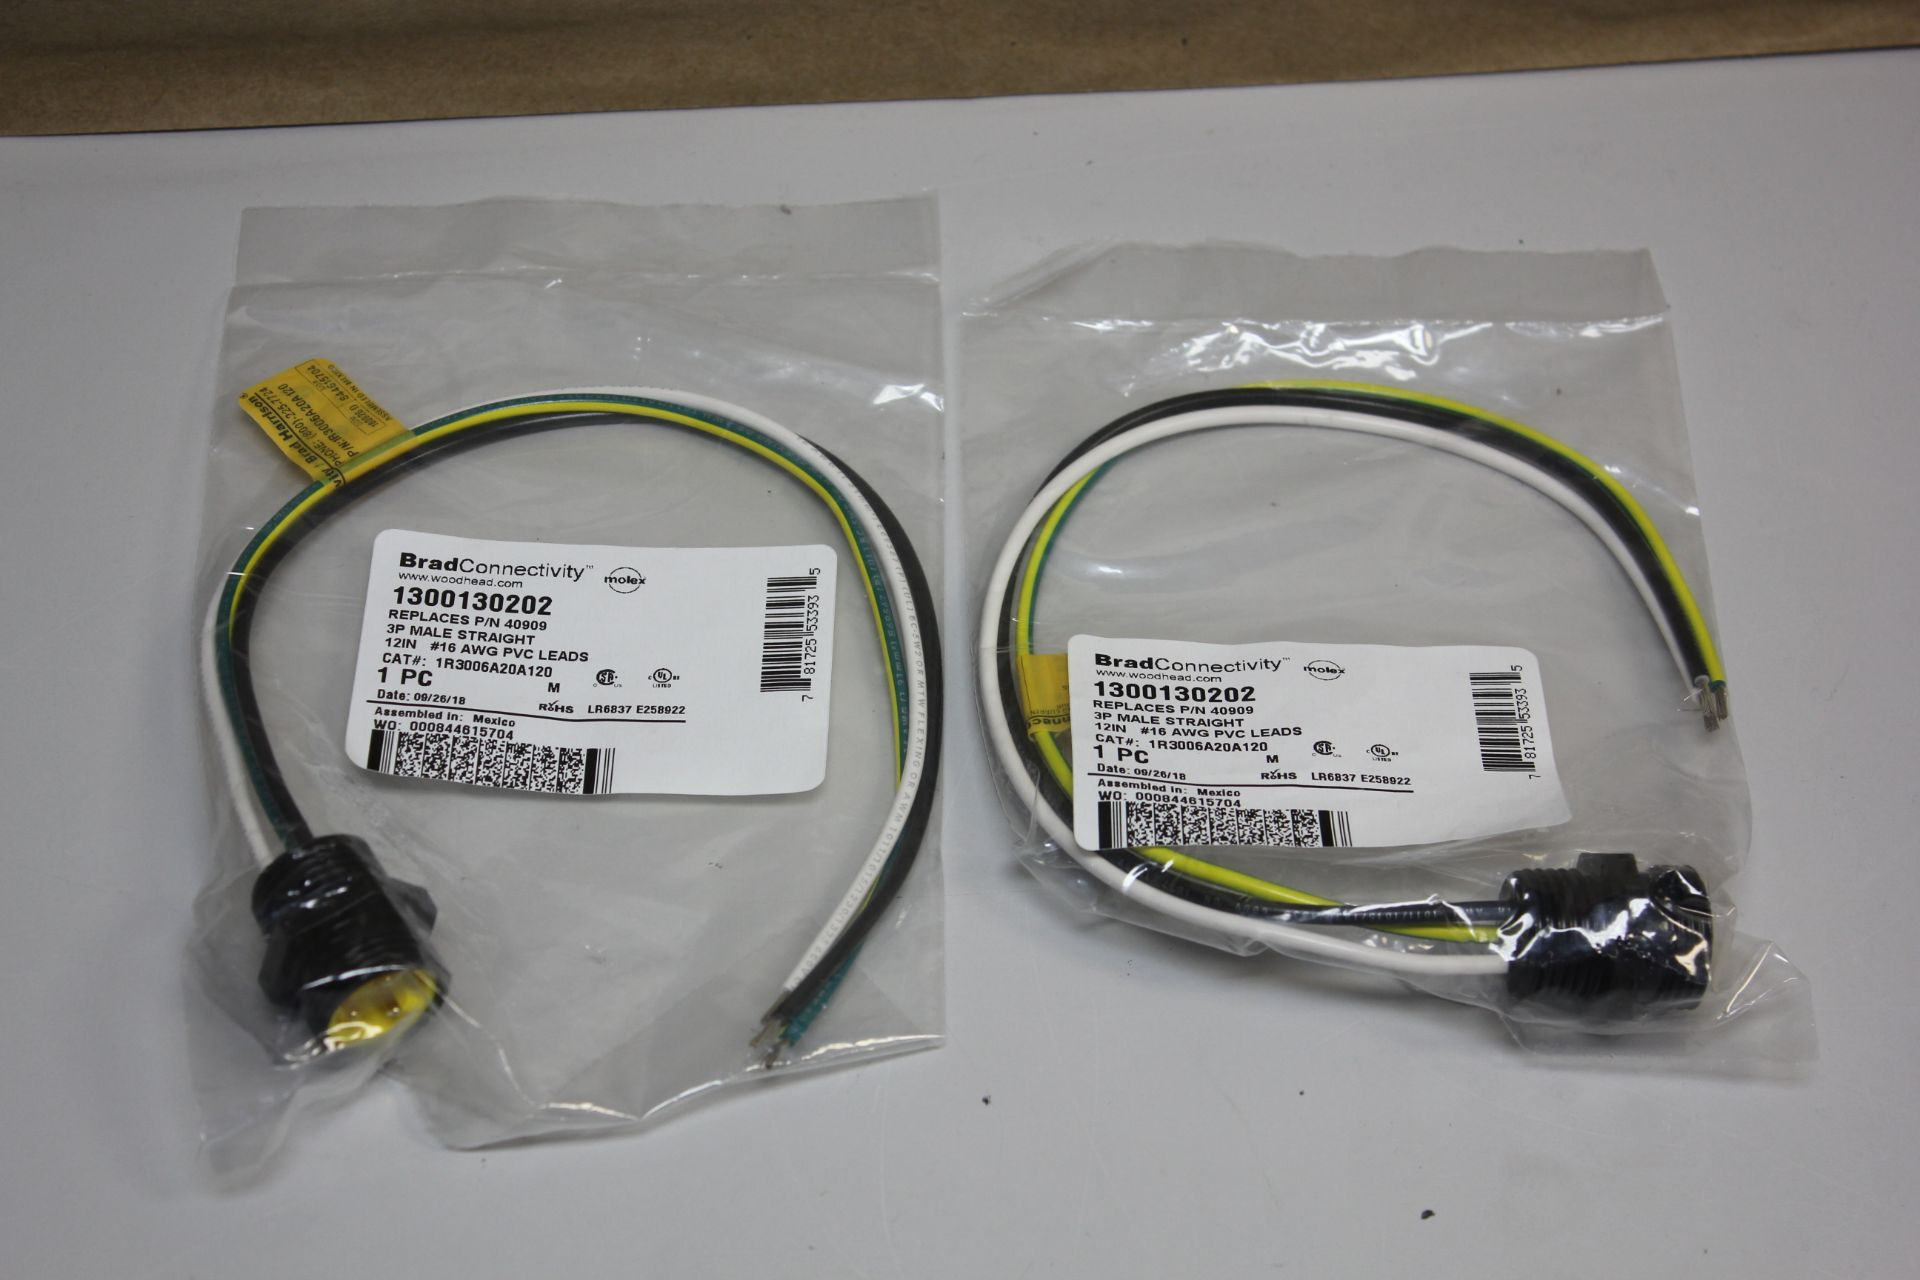 LOT OF 2 NEW BRAD CONNECTIVITY WOODHEAD 3P MALE STRAIGHT CABLES